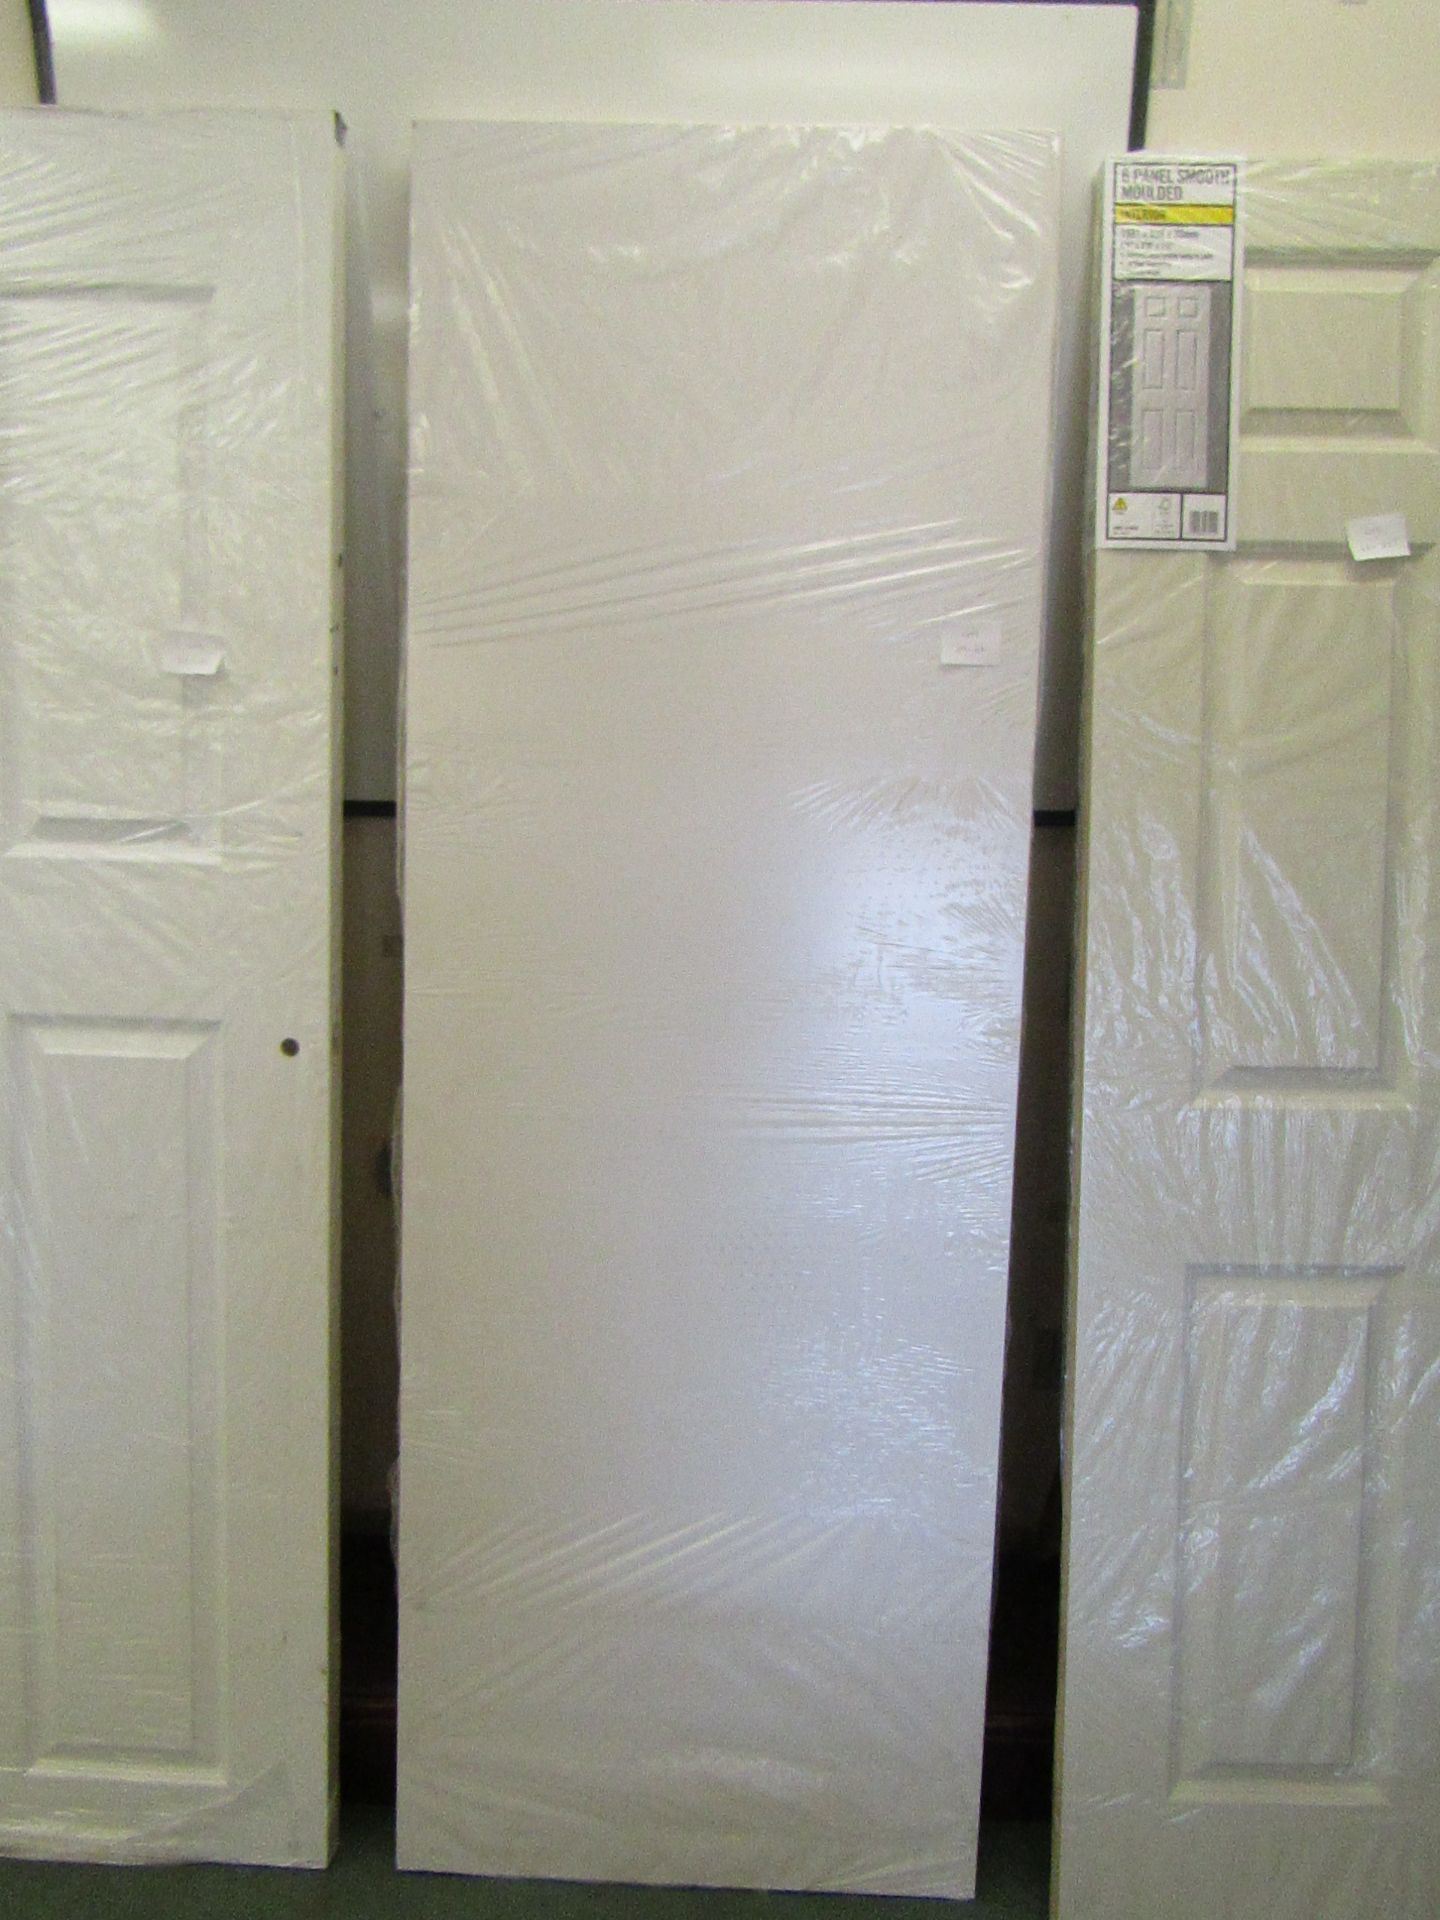 Lot 38 - Prem Door white smooth 30 min (FD30) fire door 686mm wide, unused